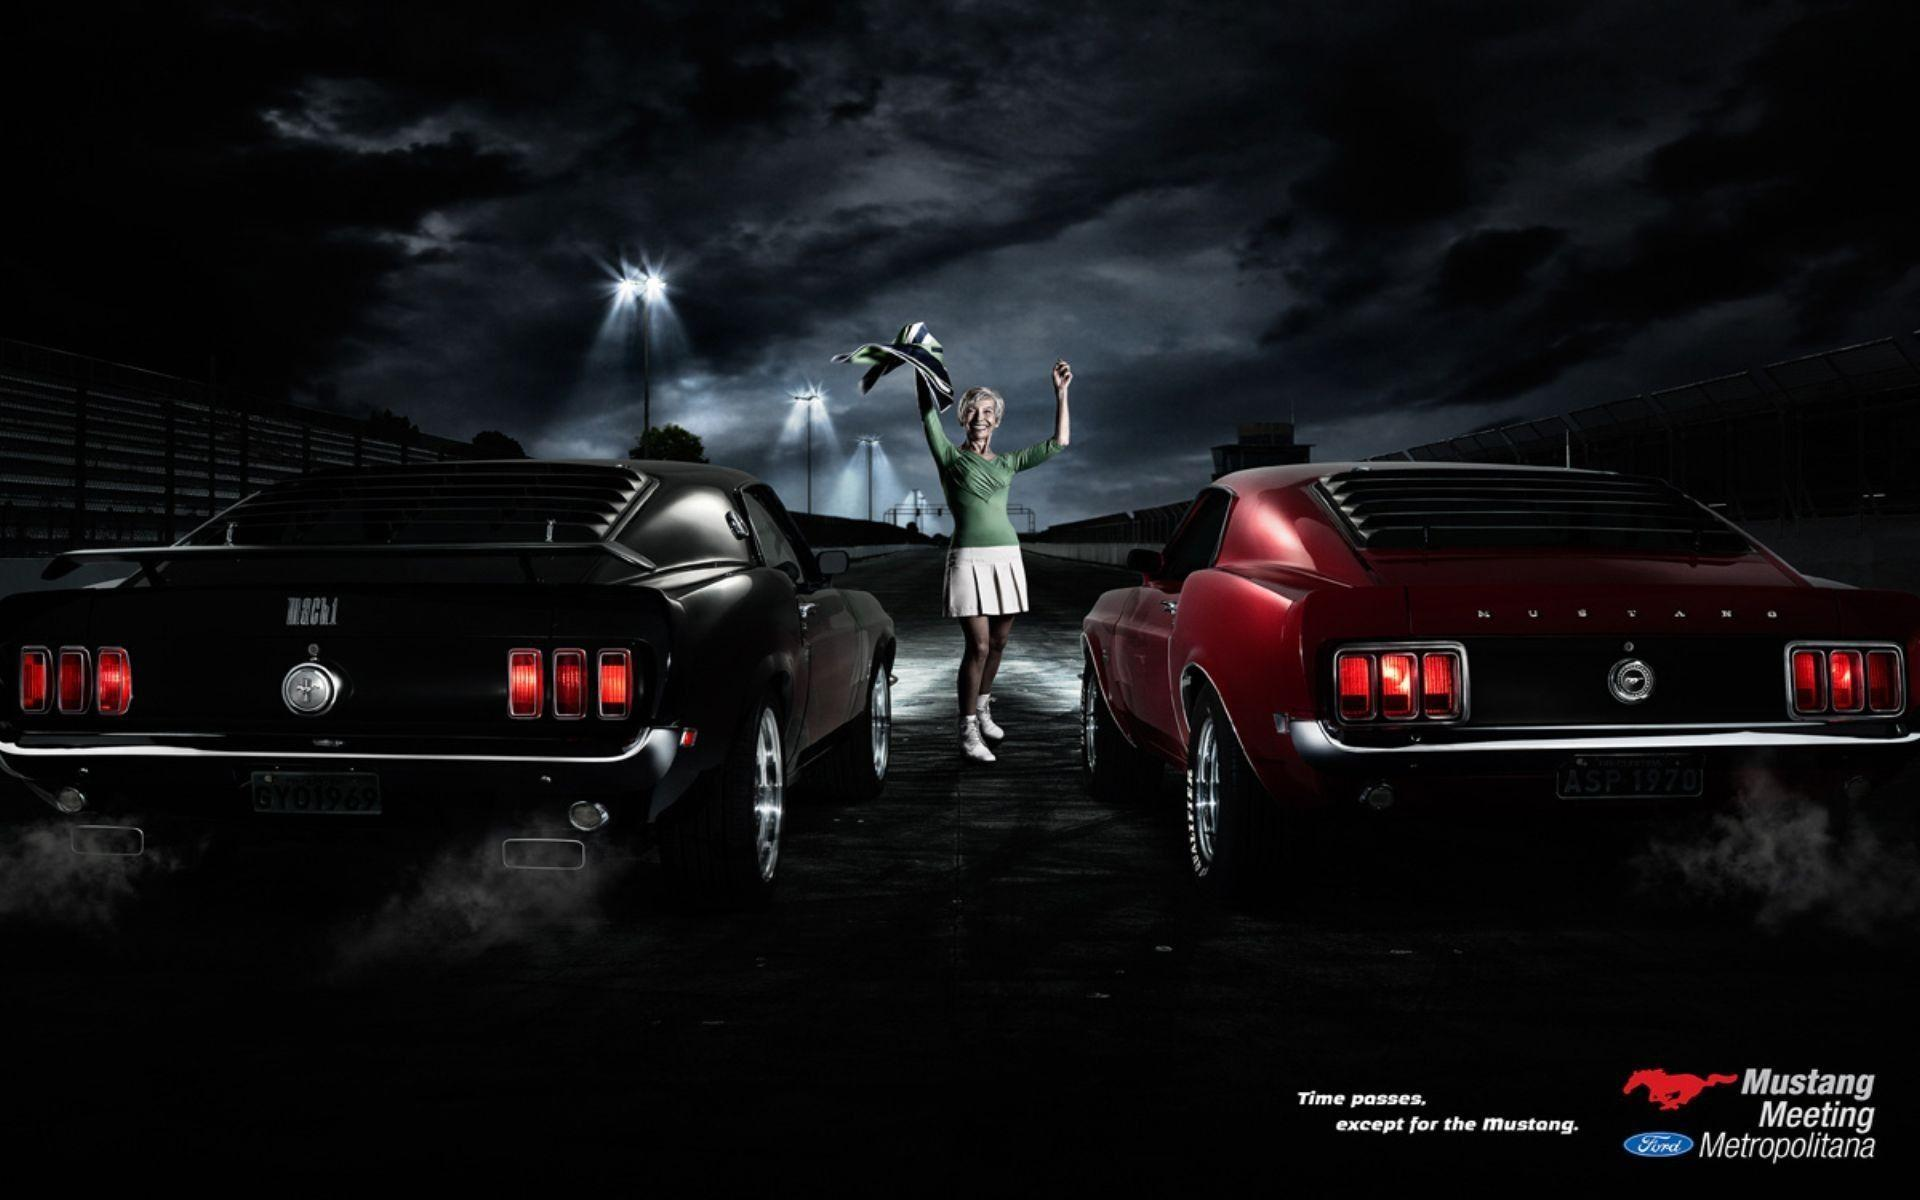 Wallpapers of Ford Mustang in HD - classic muscle car to new models